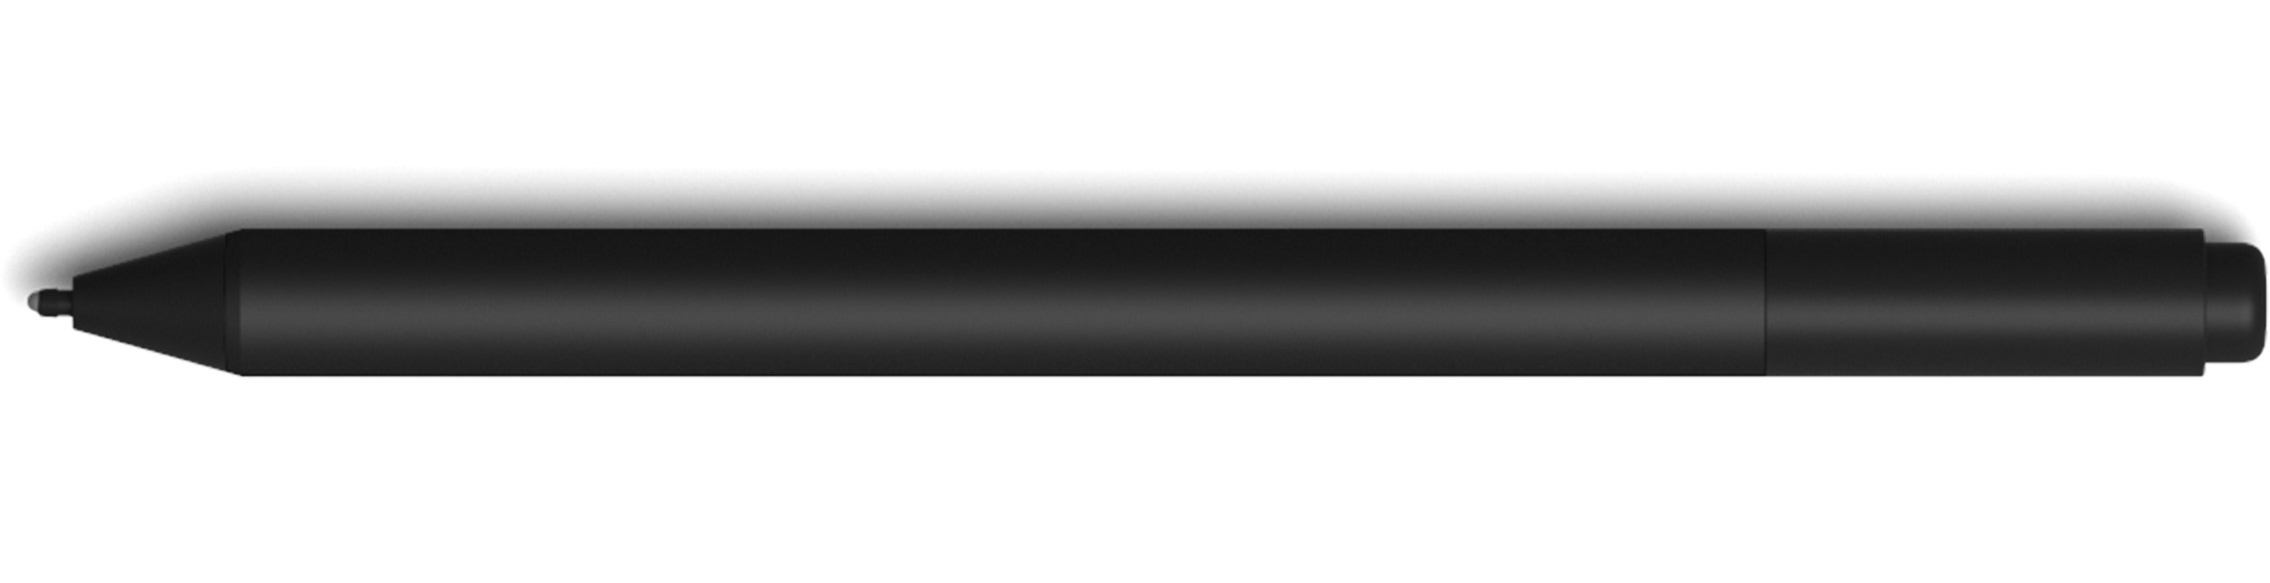 2022274-Microsoft-Surface-Pen-penna-per-PDA-Nero-20-g-Microsoft-Surface-Pen-S